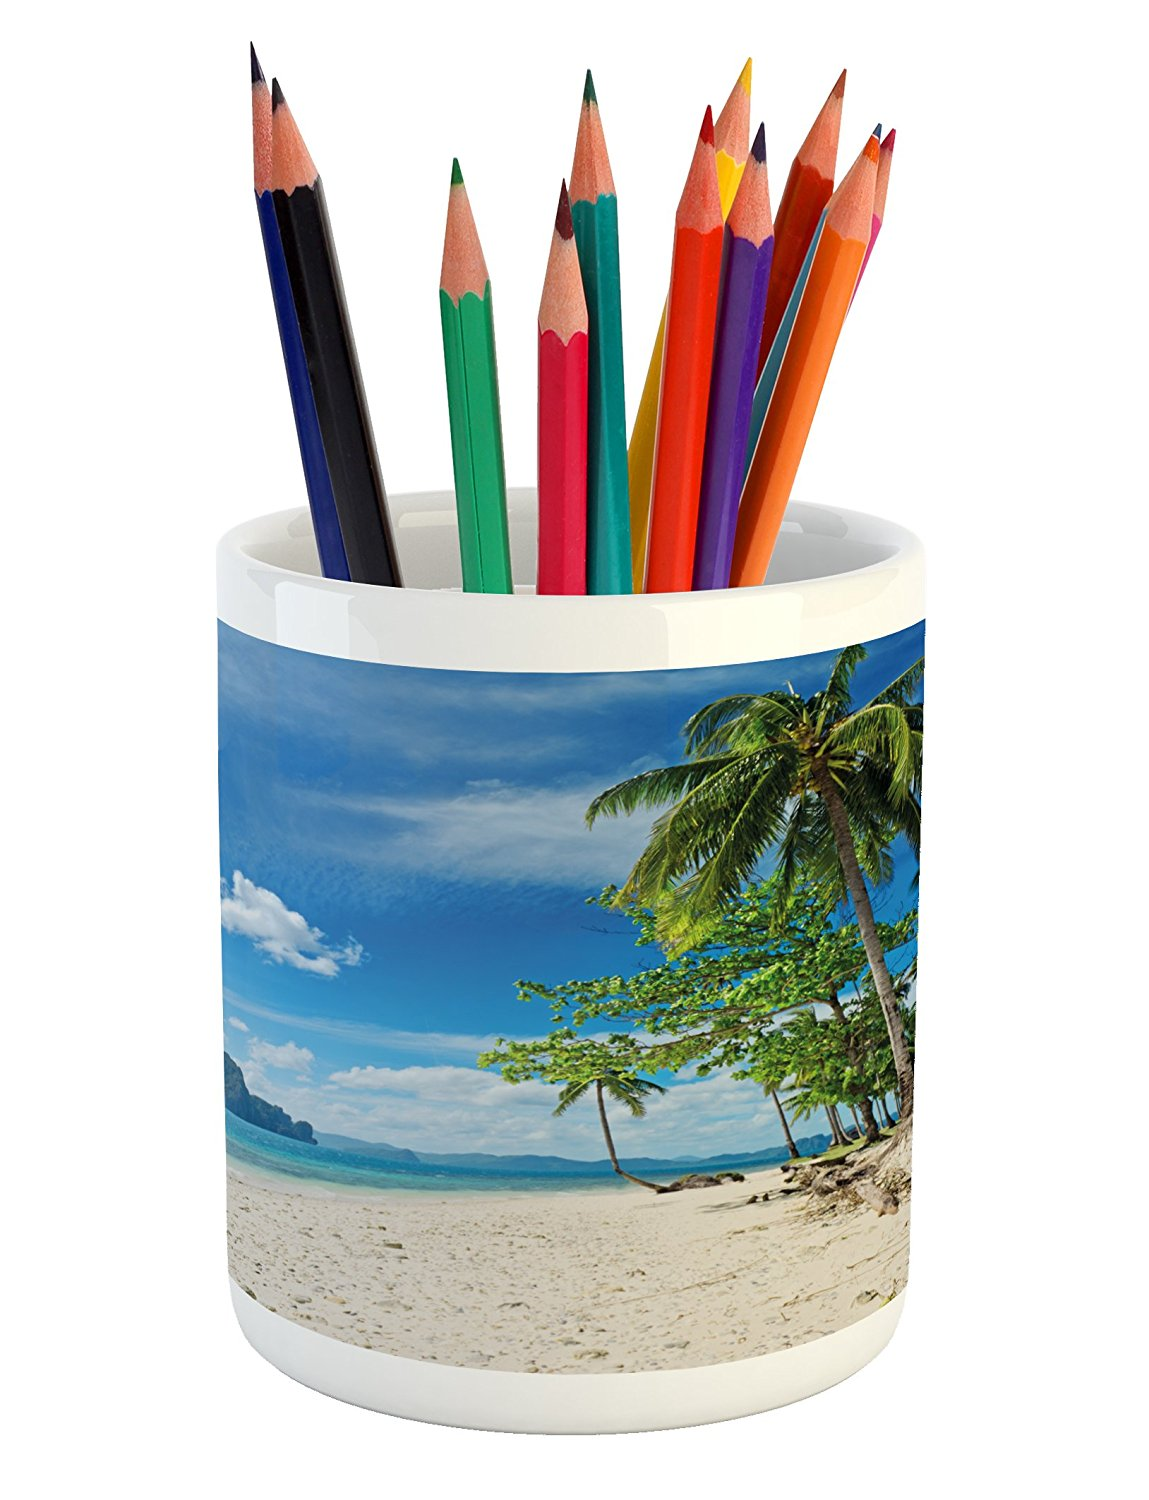 Landscape Pencil Pen Holder by Ambesonne, Exotic Botanic Island Near Seashore Palms Mountains Clear Open Sky Photo, Printed Ceramic Pencil Pen Holder for Desk Office Accessory, Blue Cream Green